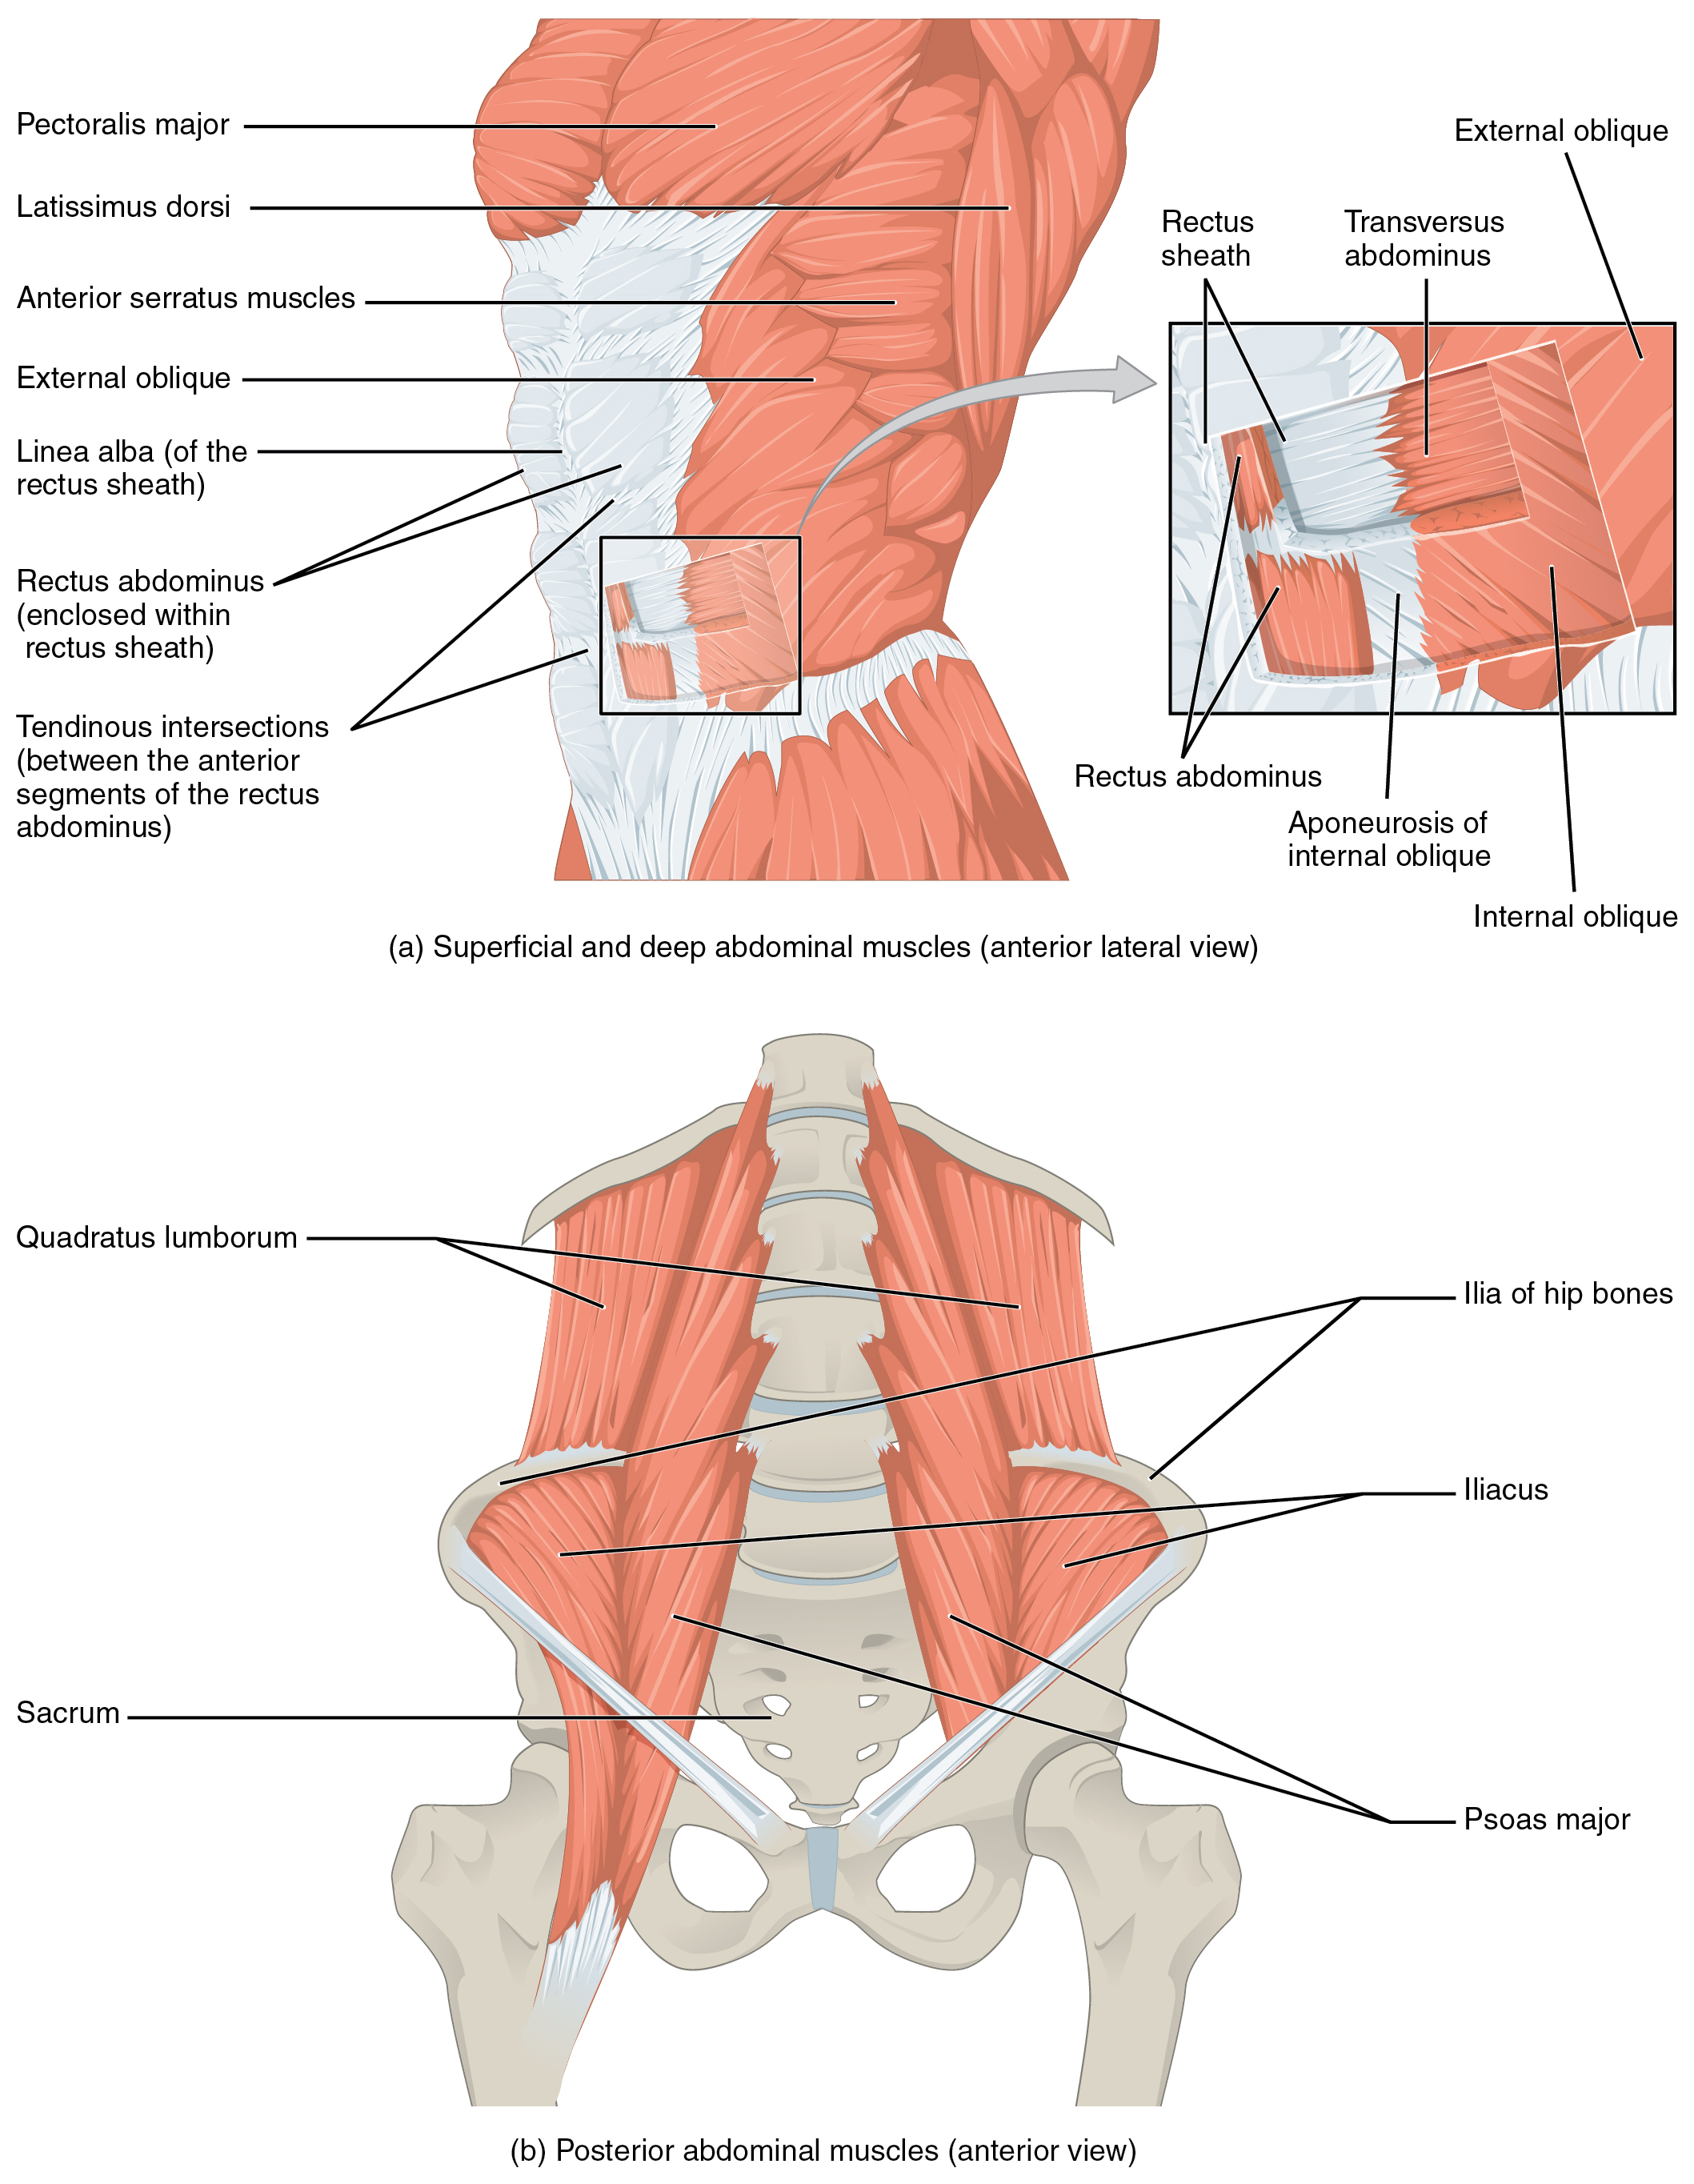 Axial Muscles of the Abdominal Wall, and Thorax